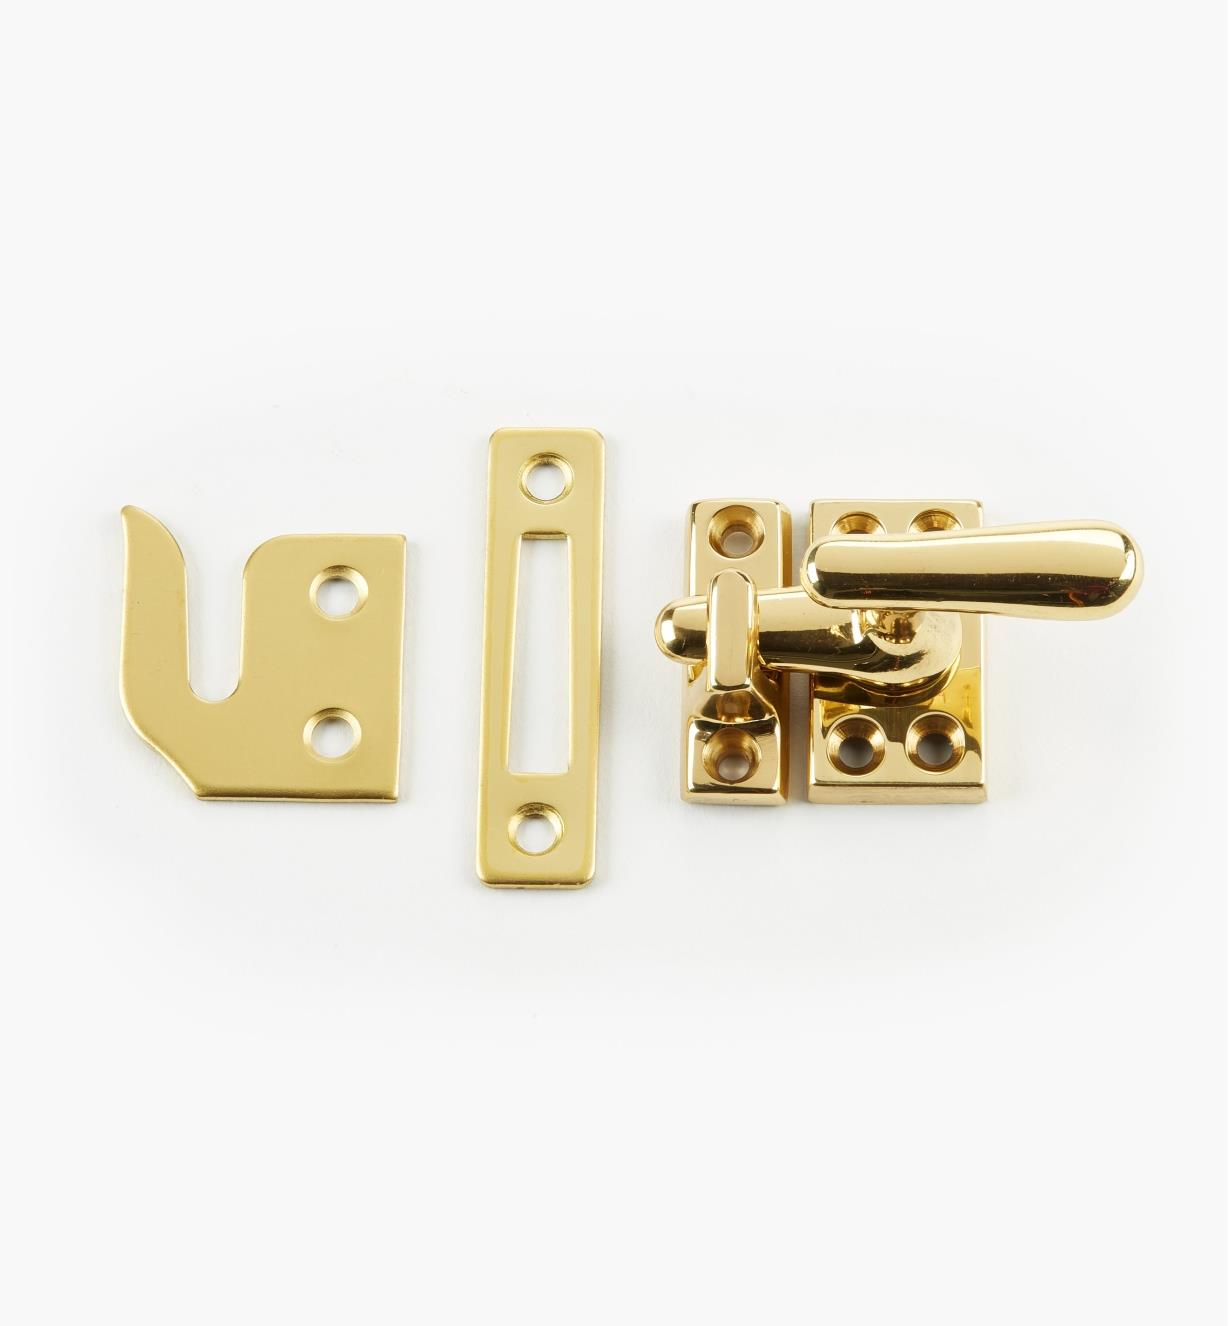 00G1601 - Transom Latch